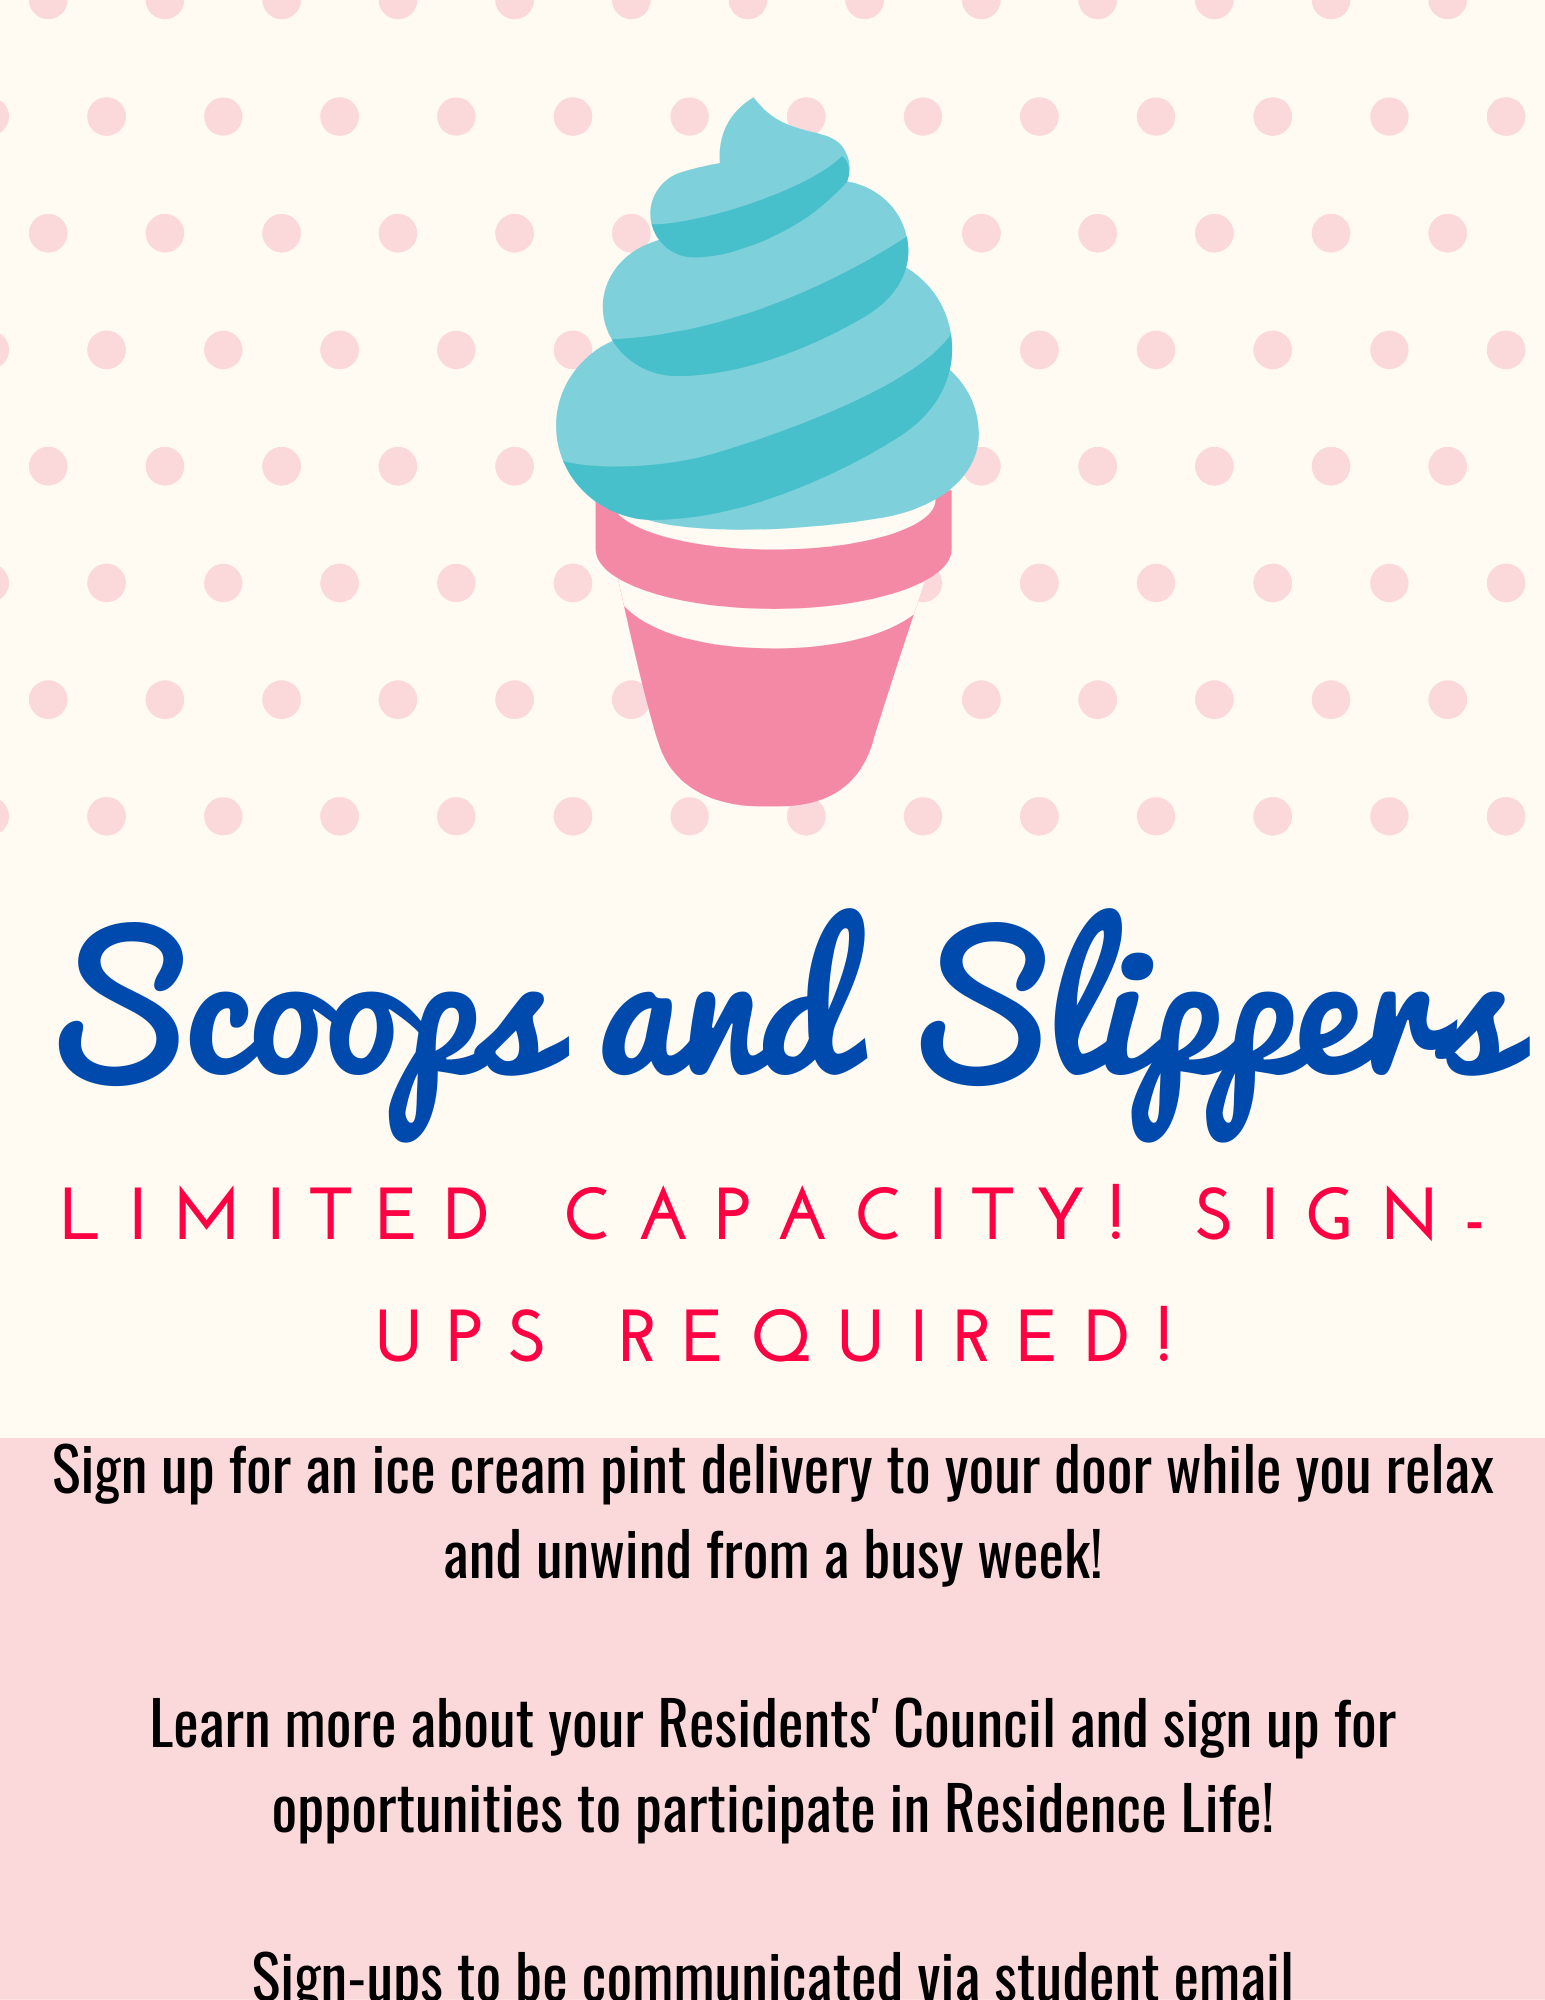 "Ice Cream Cone Graphic with text that reads ""Scoops and Slippers. Limited capacity. Sign-Ups Required. Sign up for an ice cream pint delivery to your door while you relax and unwind from a busy week! learn more about your Residents' Council and sign up for opportunities to participate in Residence Life! Sign-ups to be communicated via student email."